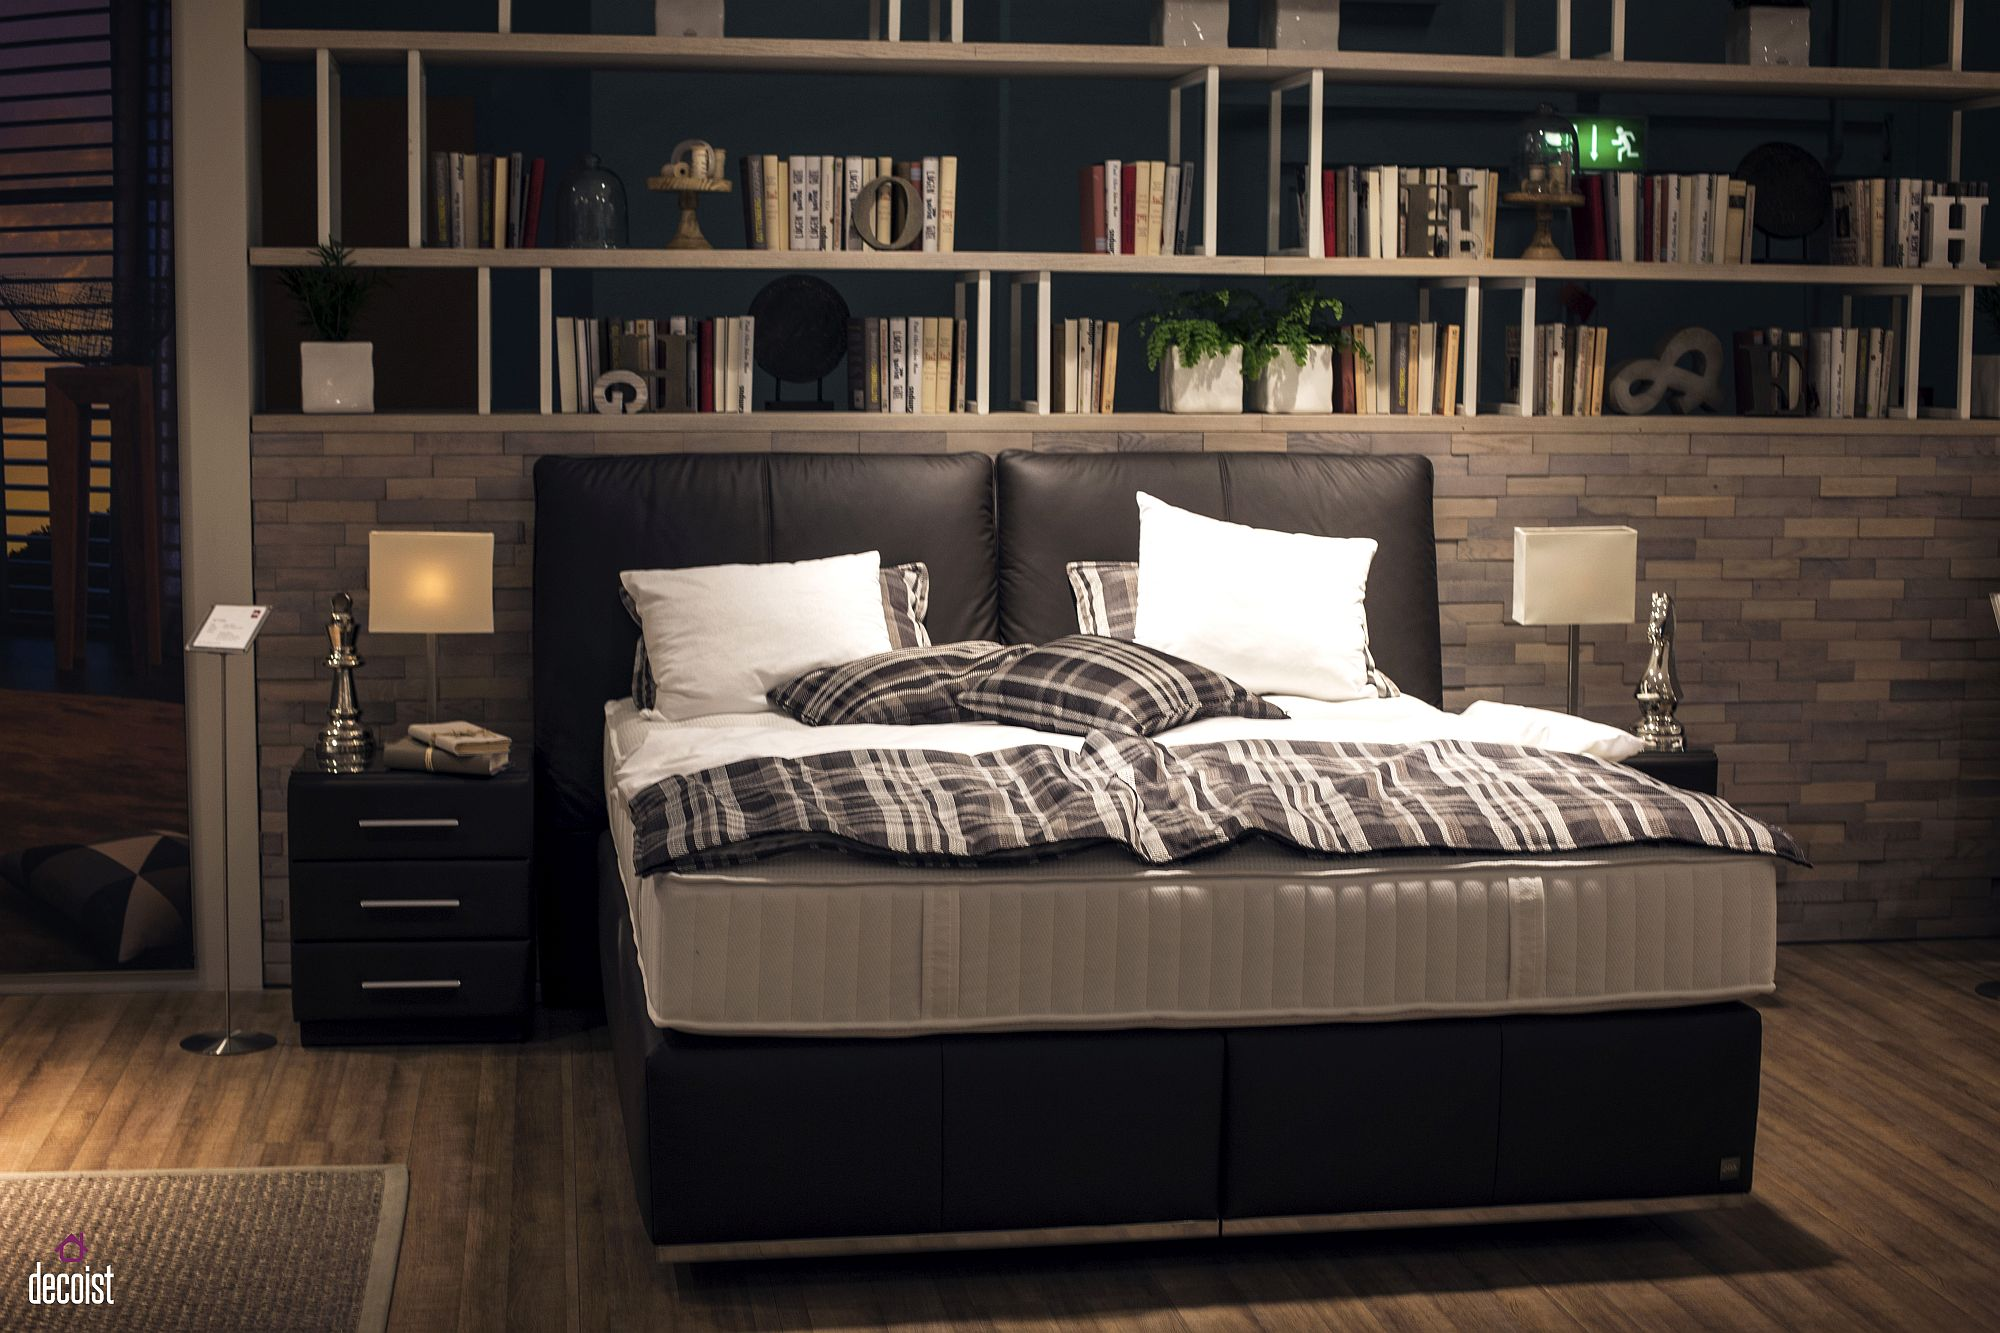 Classic-nightstand-brings-symmetry-and-style-to-the-contemporary-bedroom